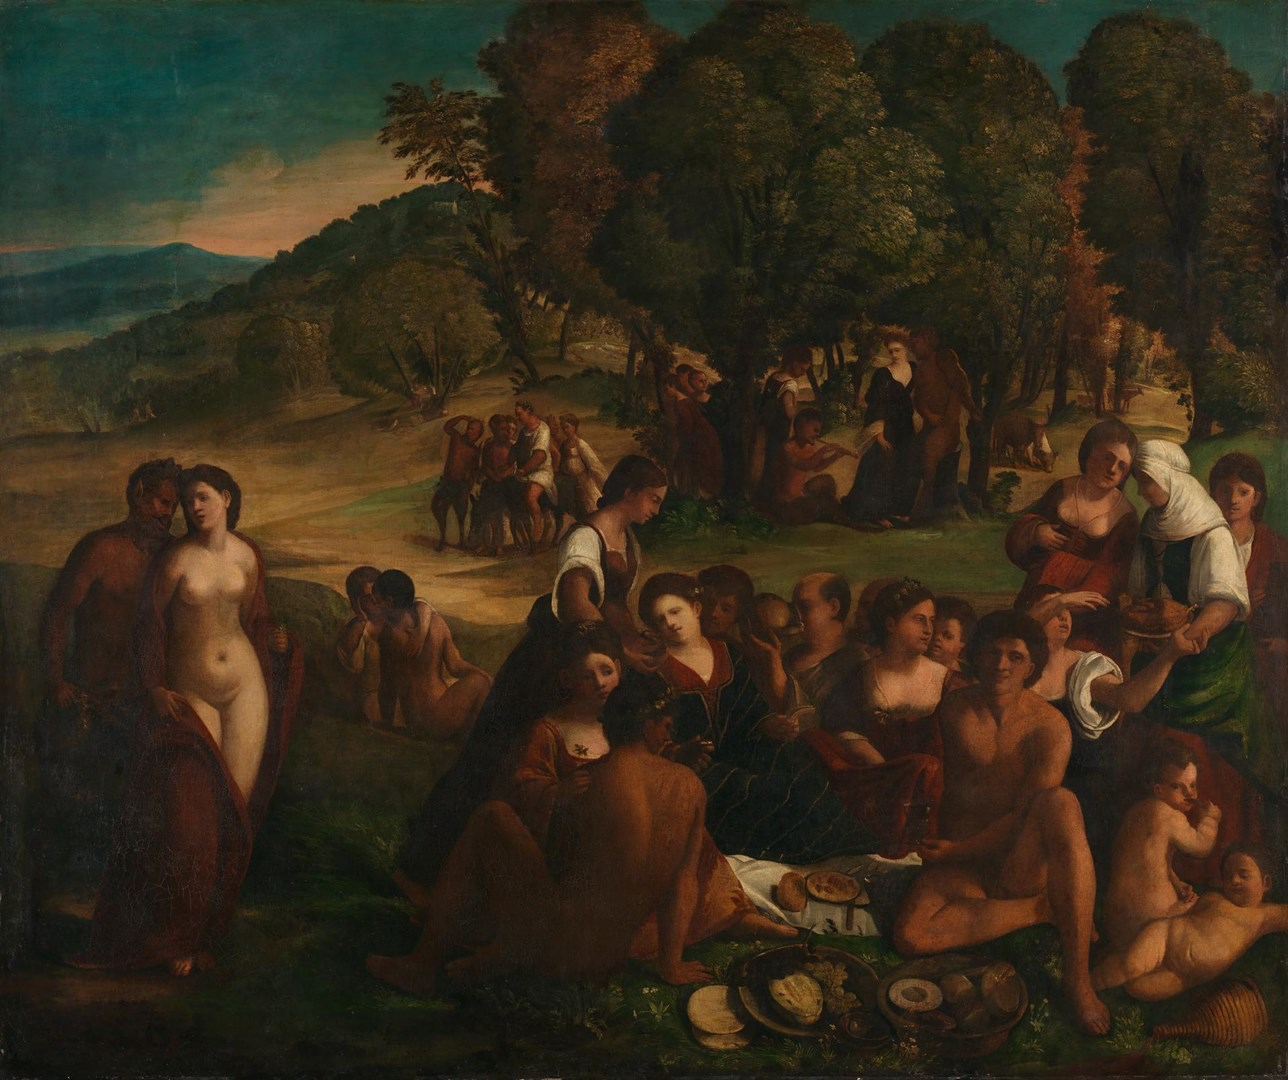 A Bacchanal by Follower of Dosso Dossi